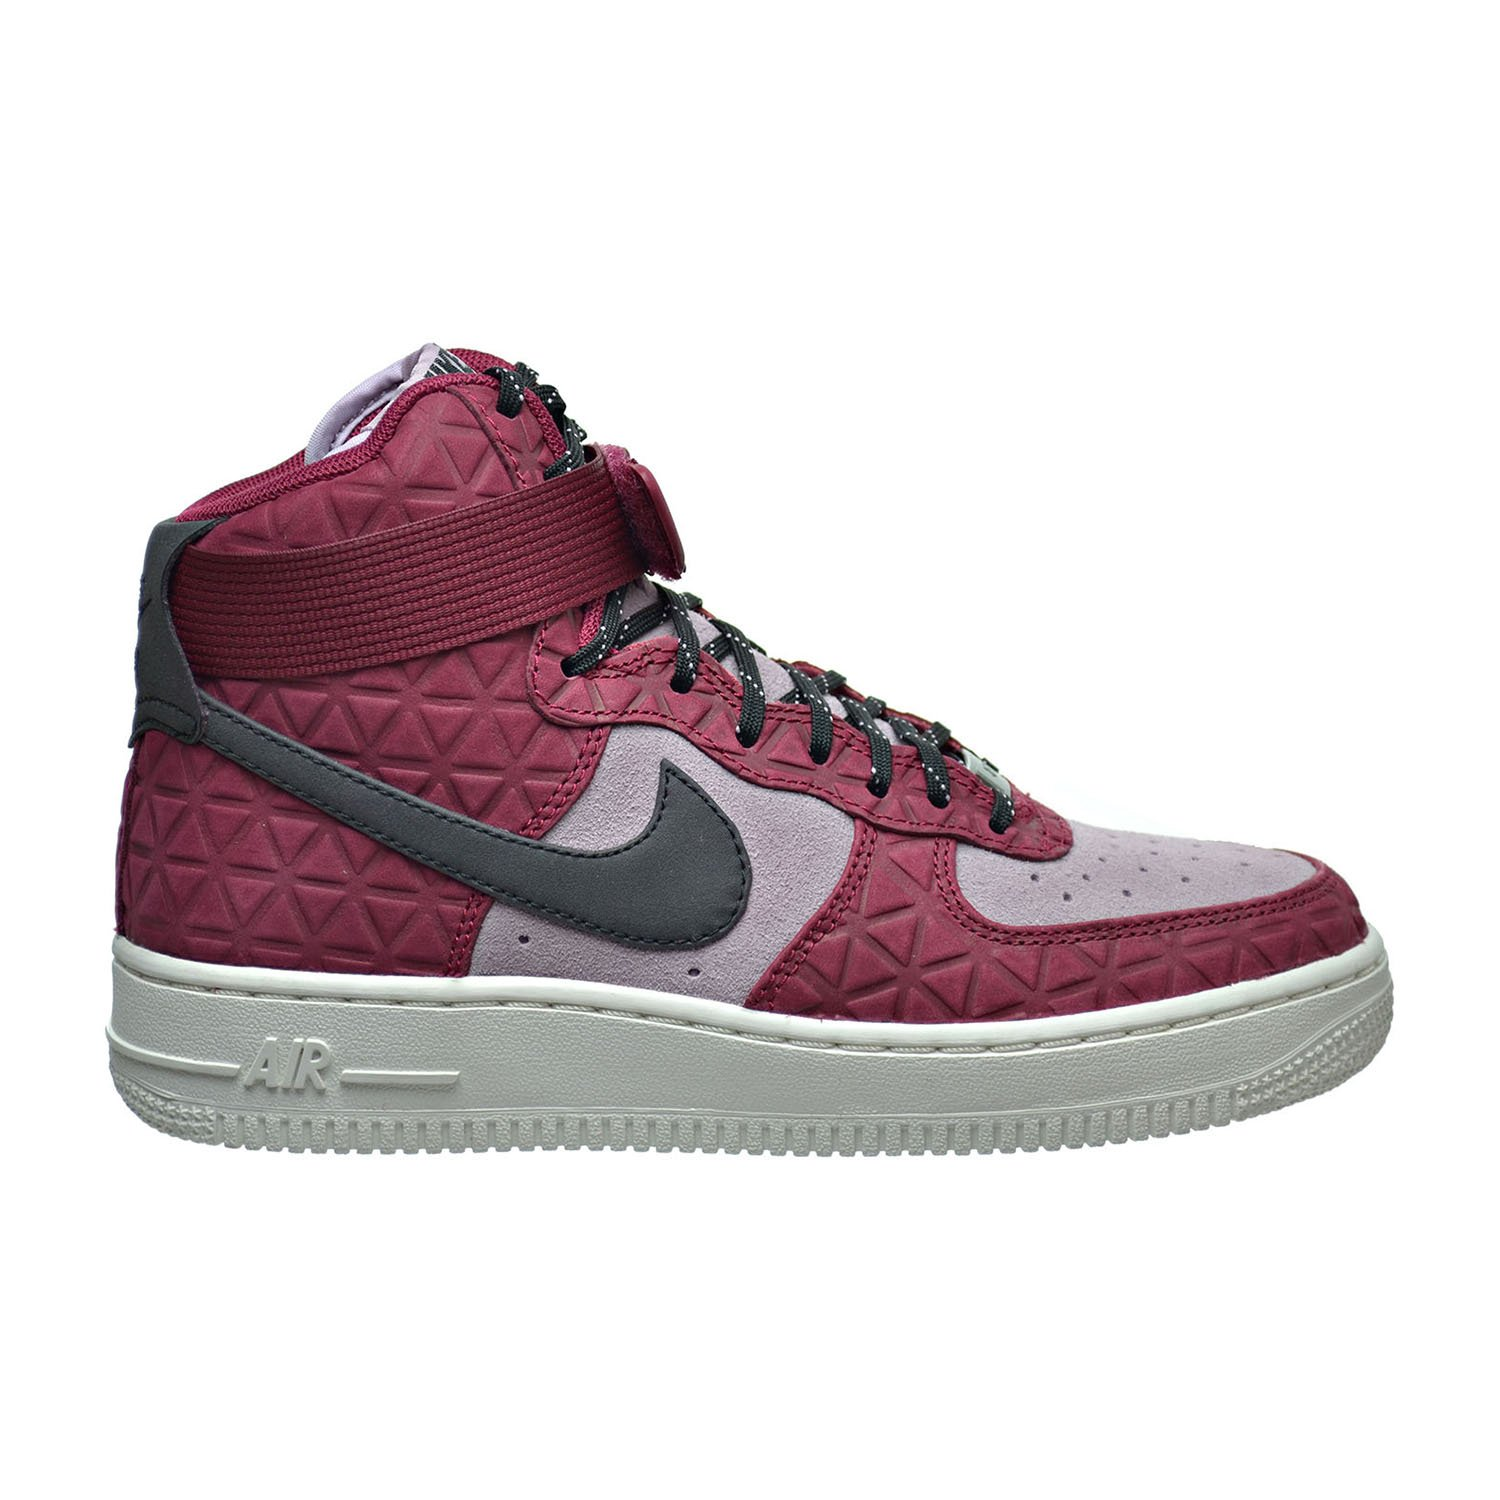 Nike Women's Air Force 1 Hi Premium Black/Black Gum Med Brown Sail Basketball Shoe B00UNJ0FBC 7 B(M) US|Noble Red/Black-plum Fog-summit White